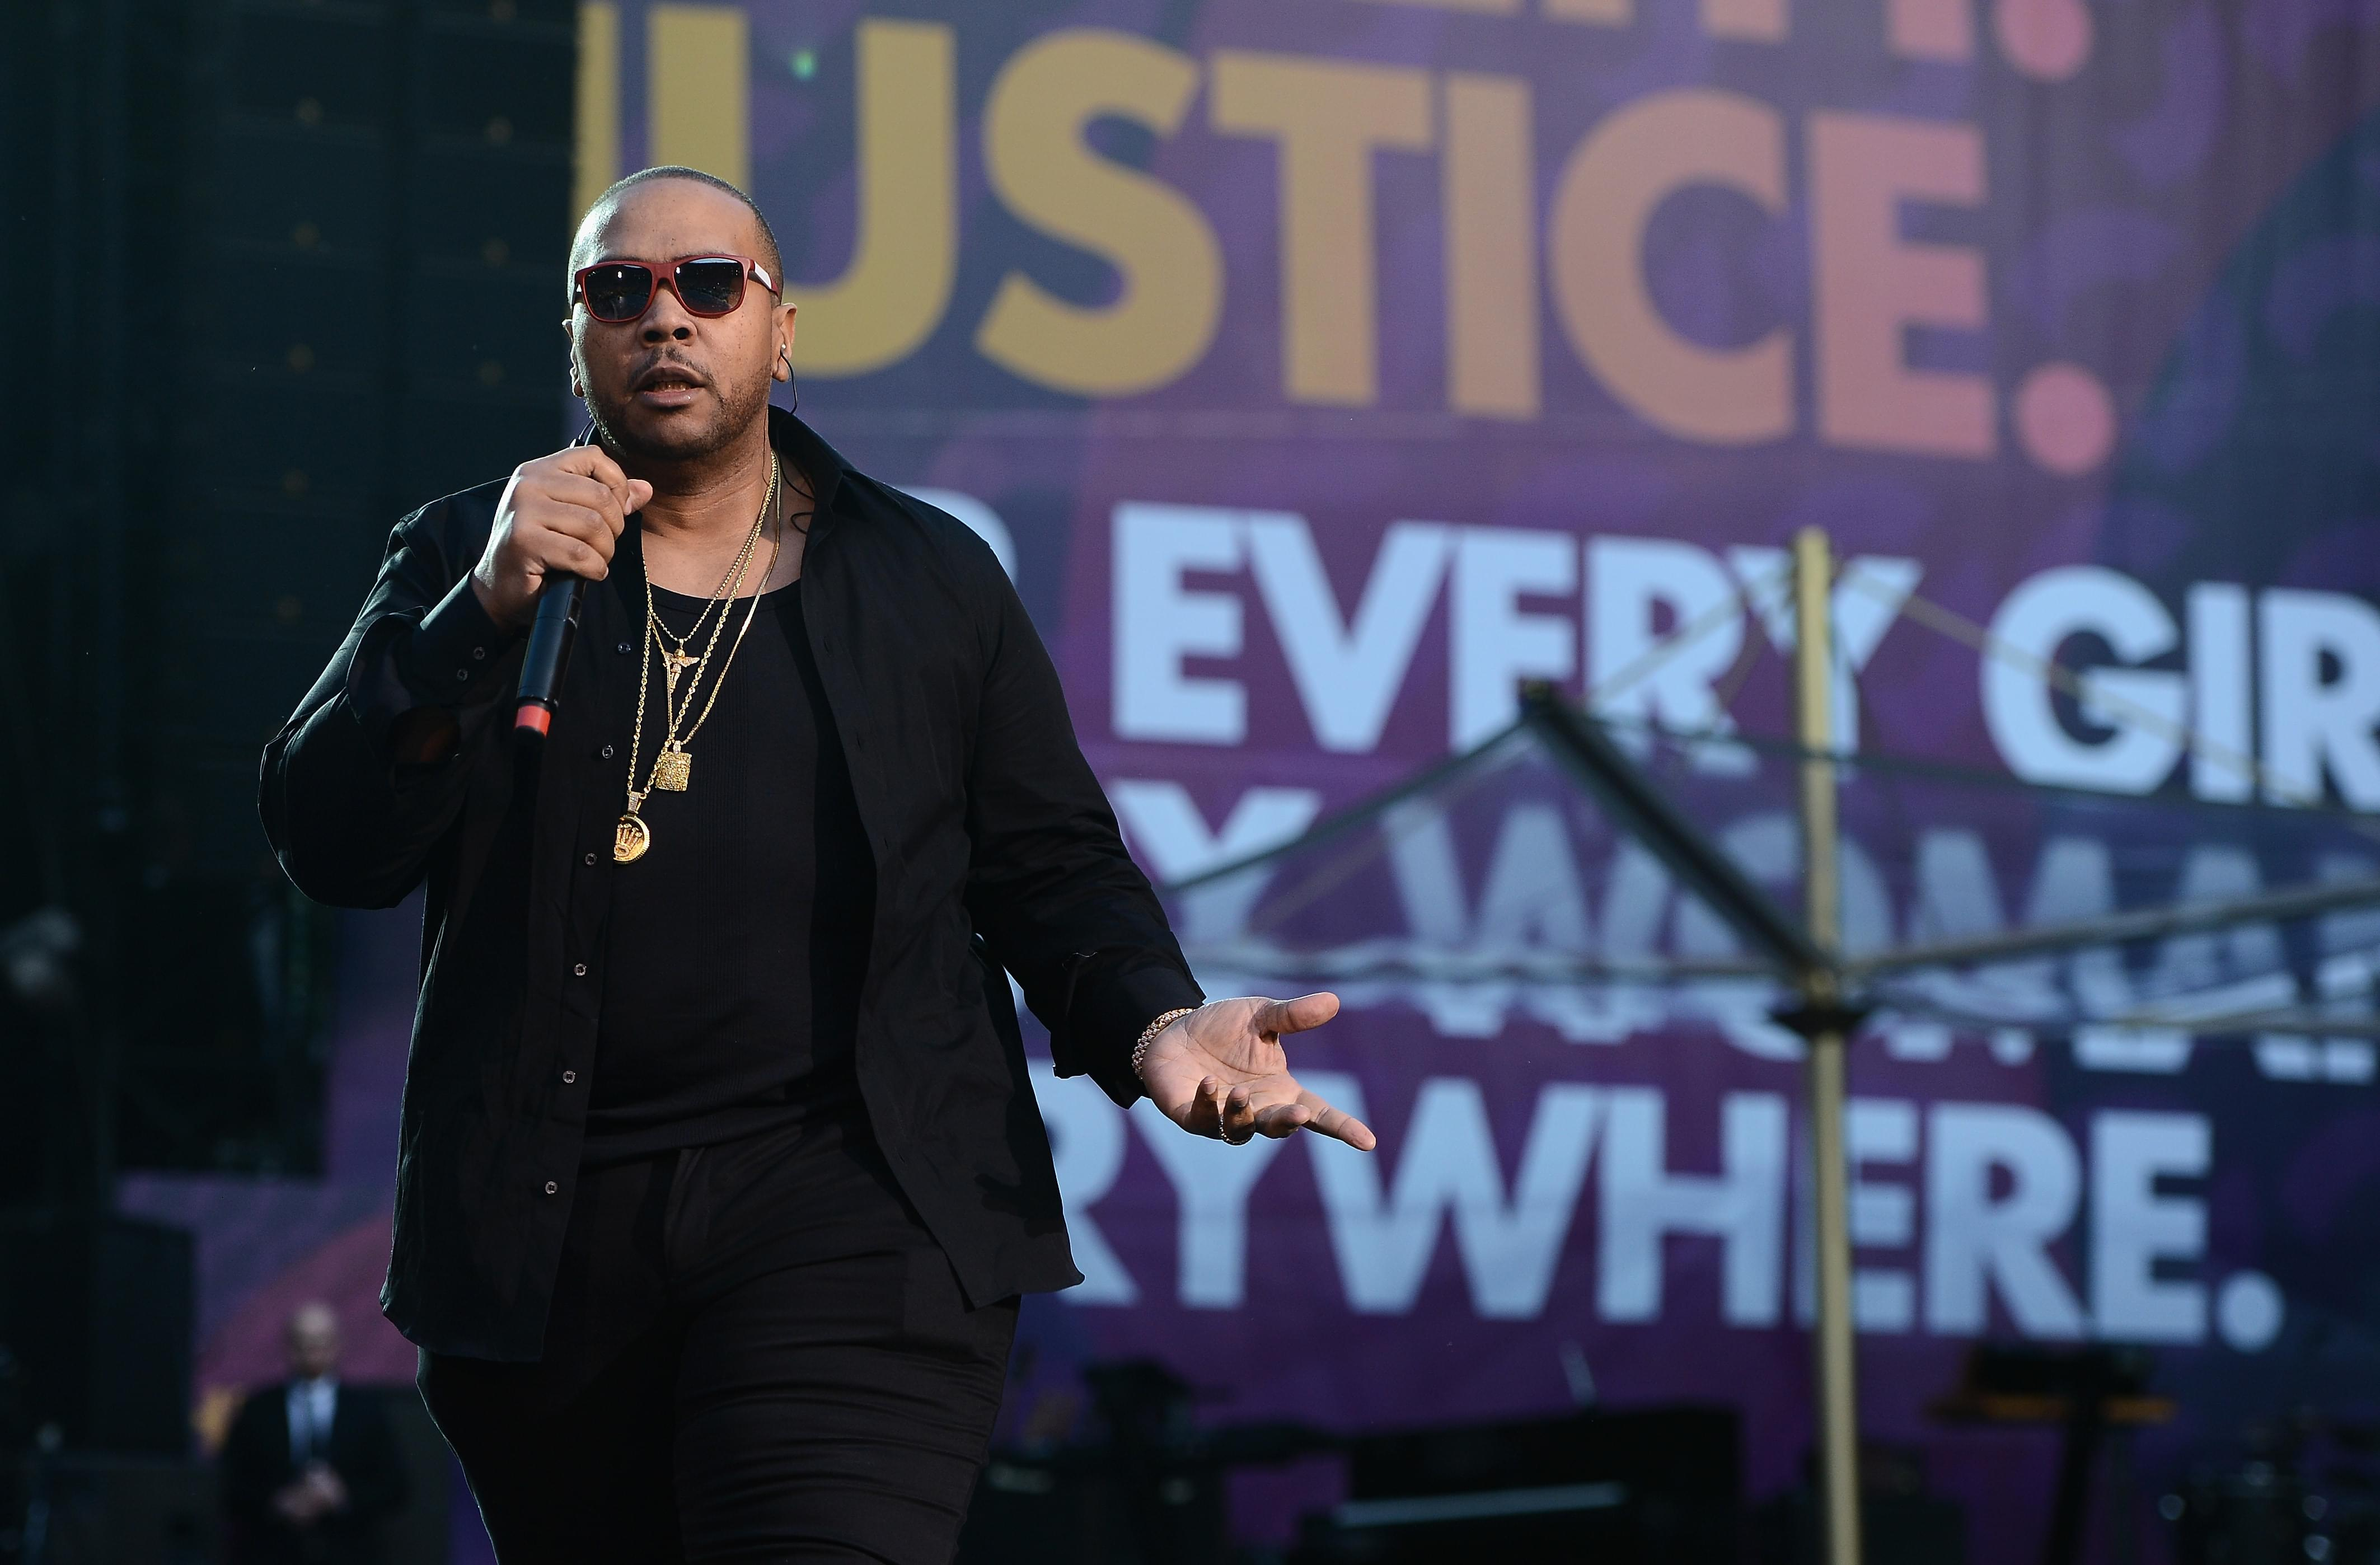 Timbaland Sells Florida Mansion After Battle With Squatter